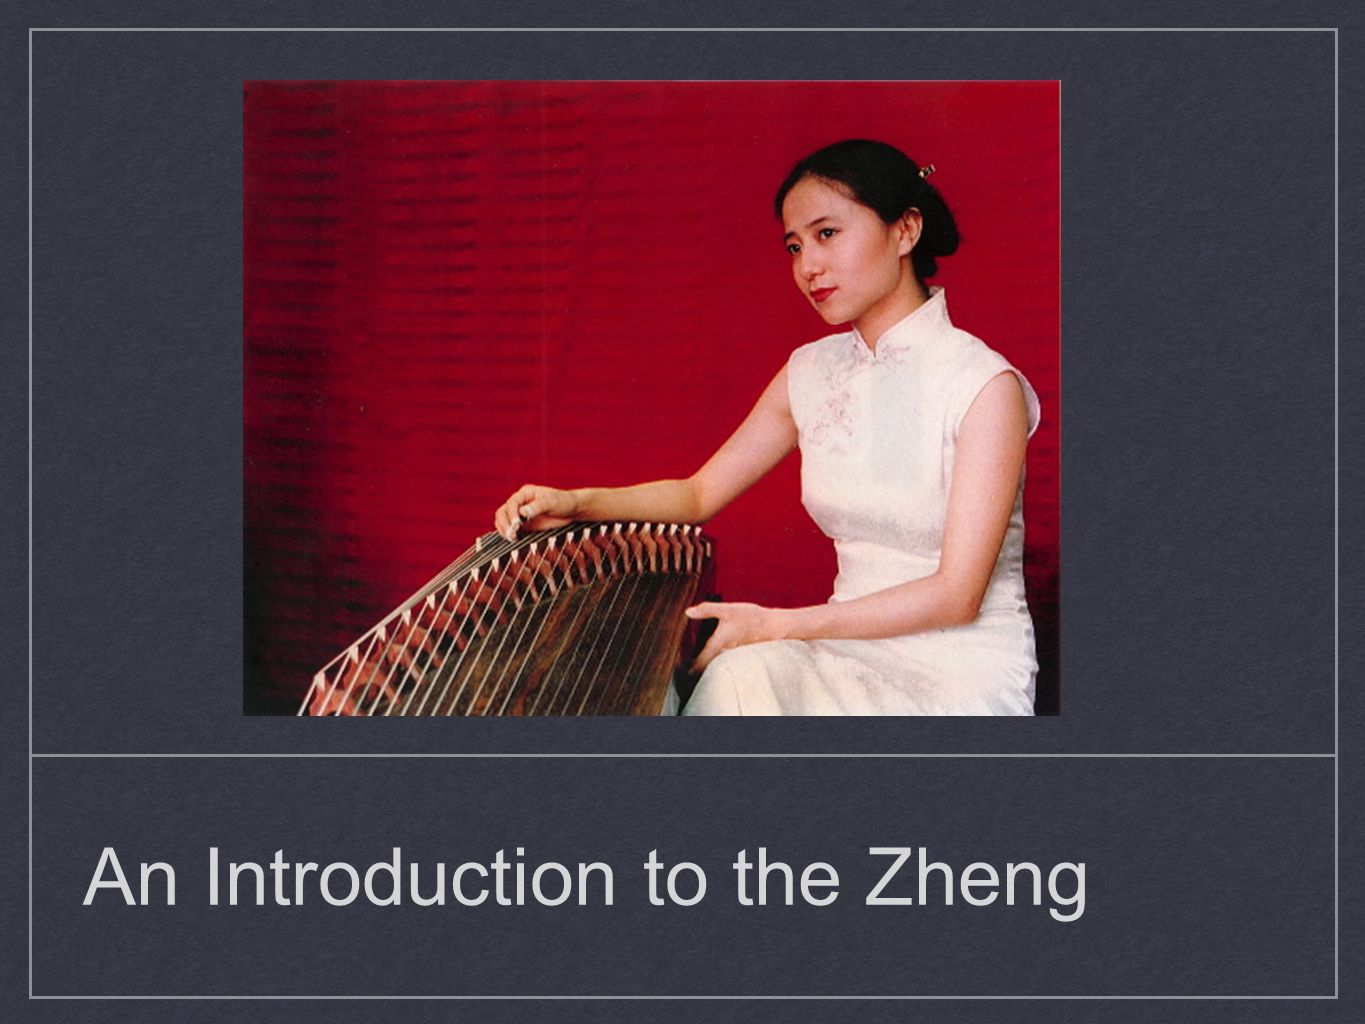 An Introduction to the Zheng